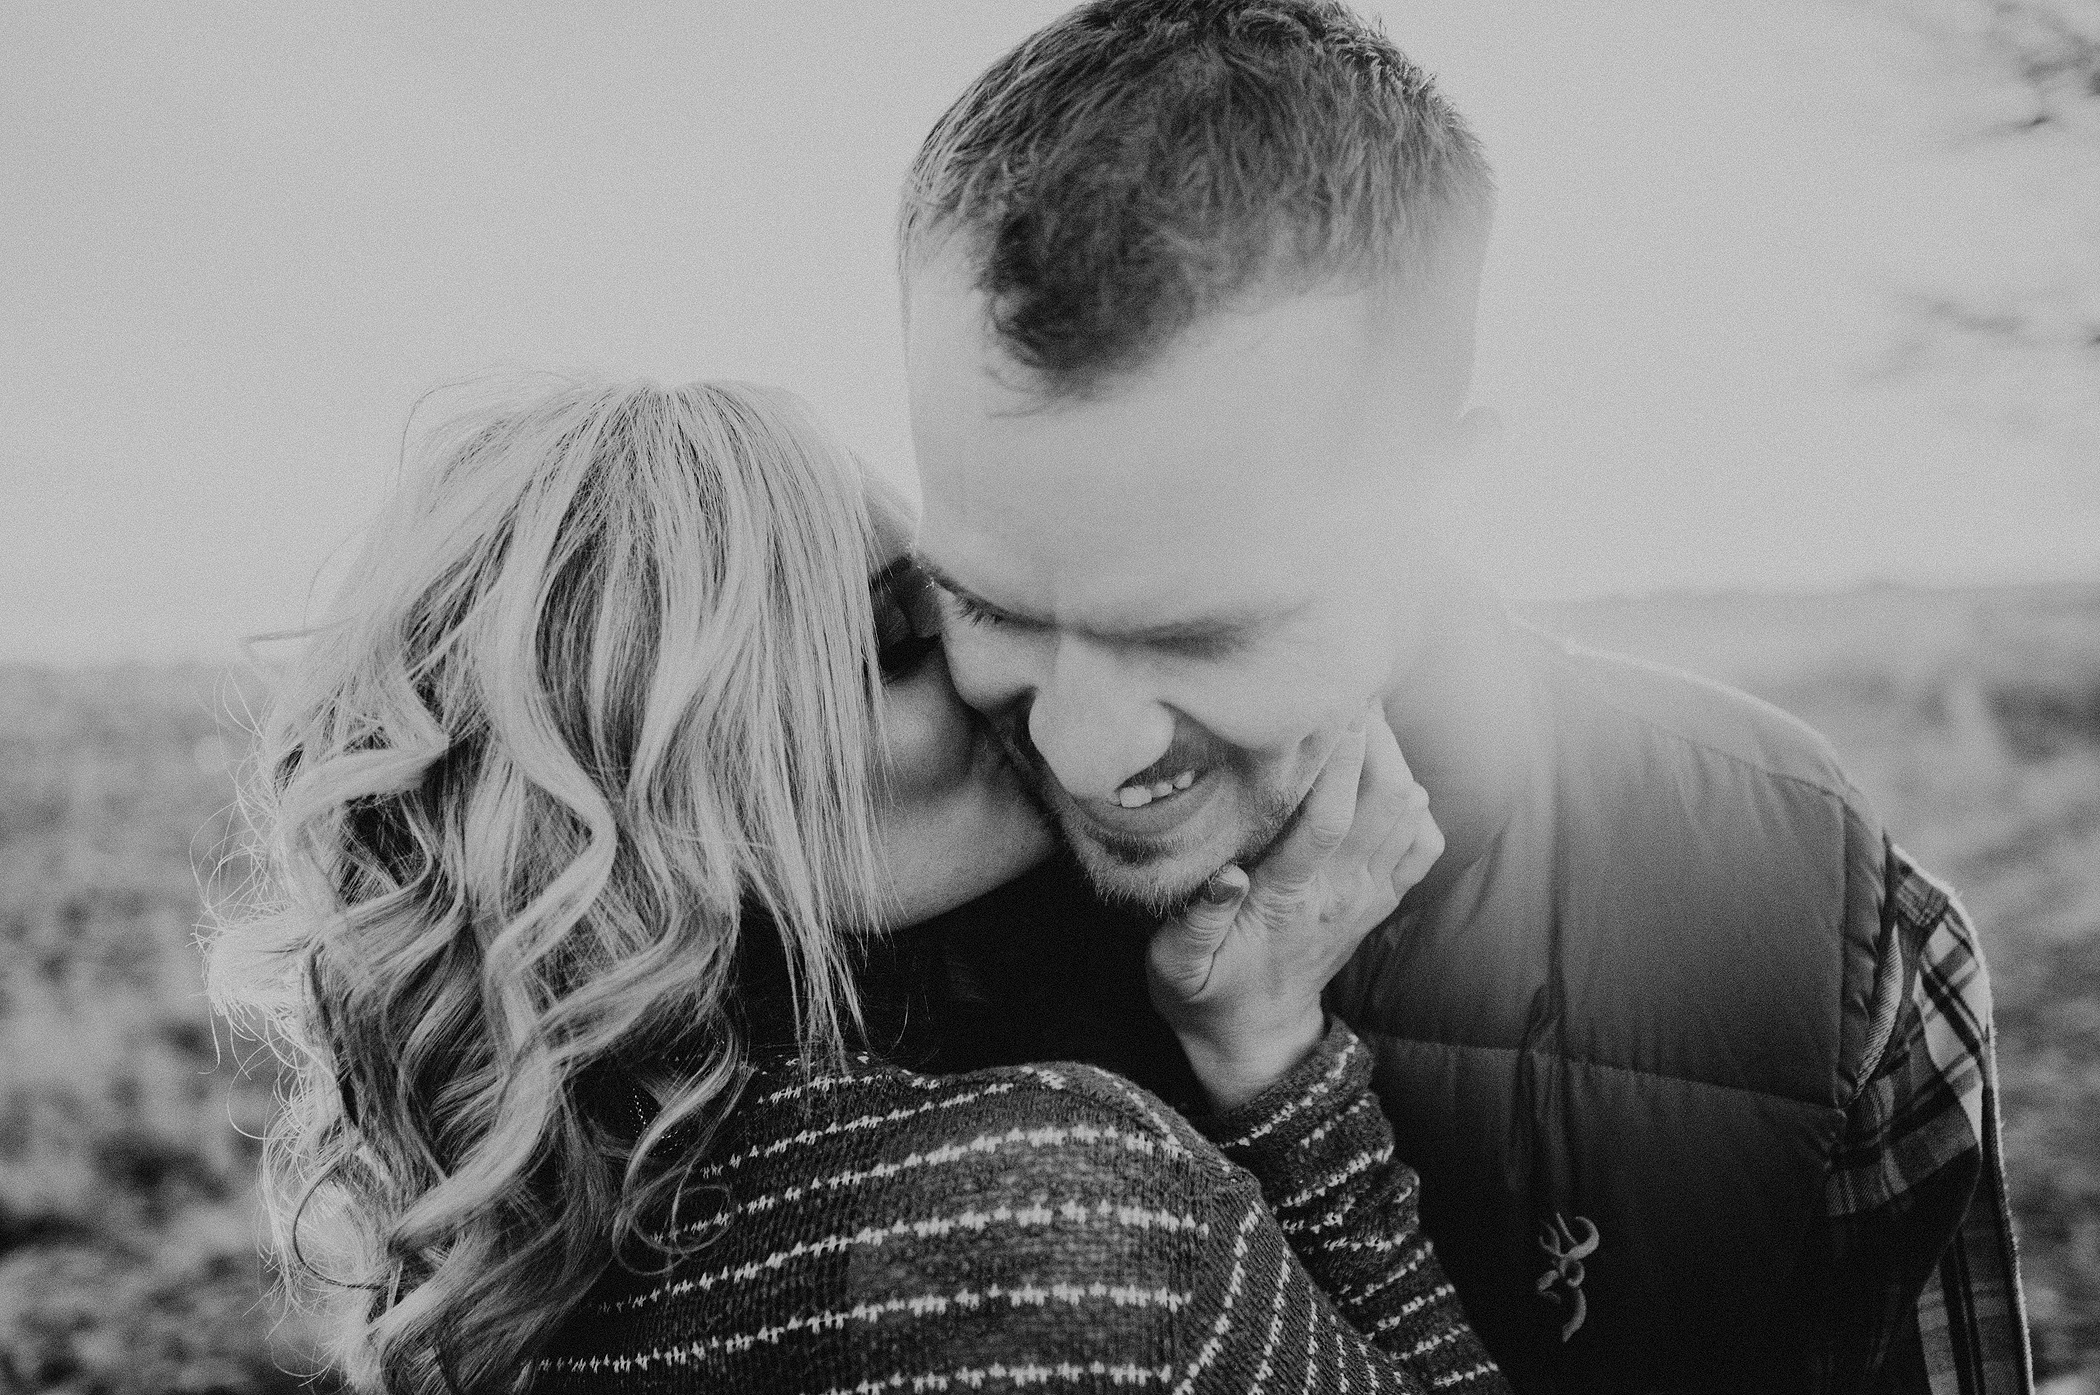 kaylie-sirek-nebraska-wedding-engagement-photographer-photography-grand-island-kearney-hastings-lincoln-34.png